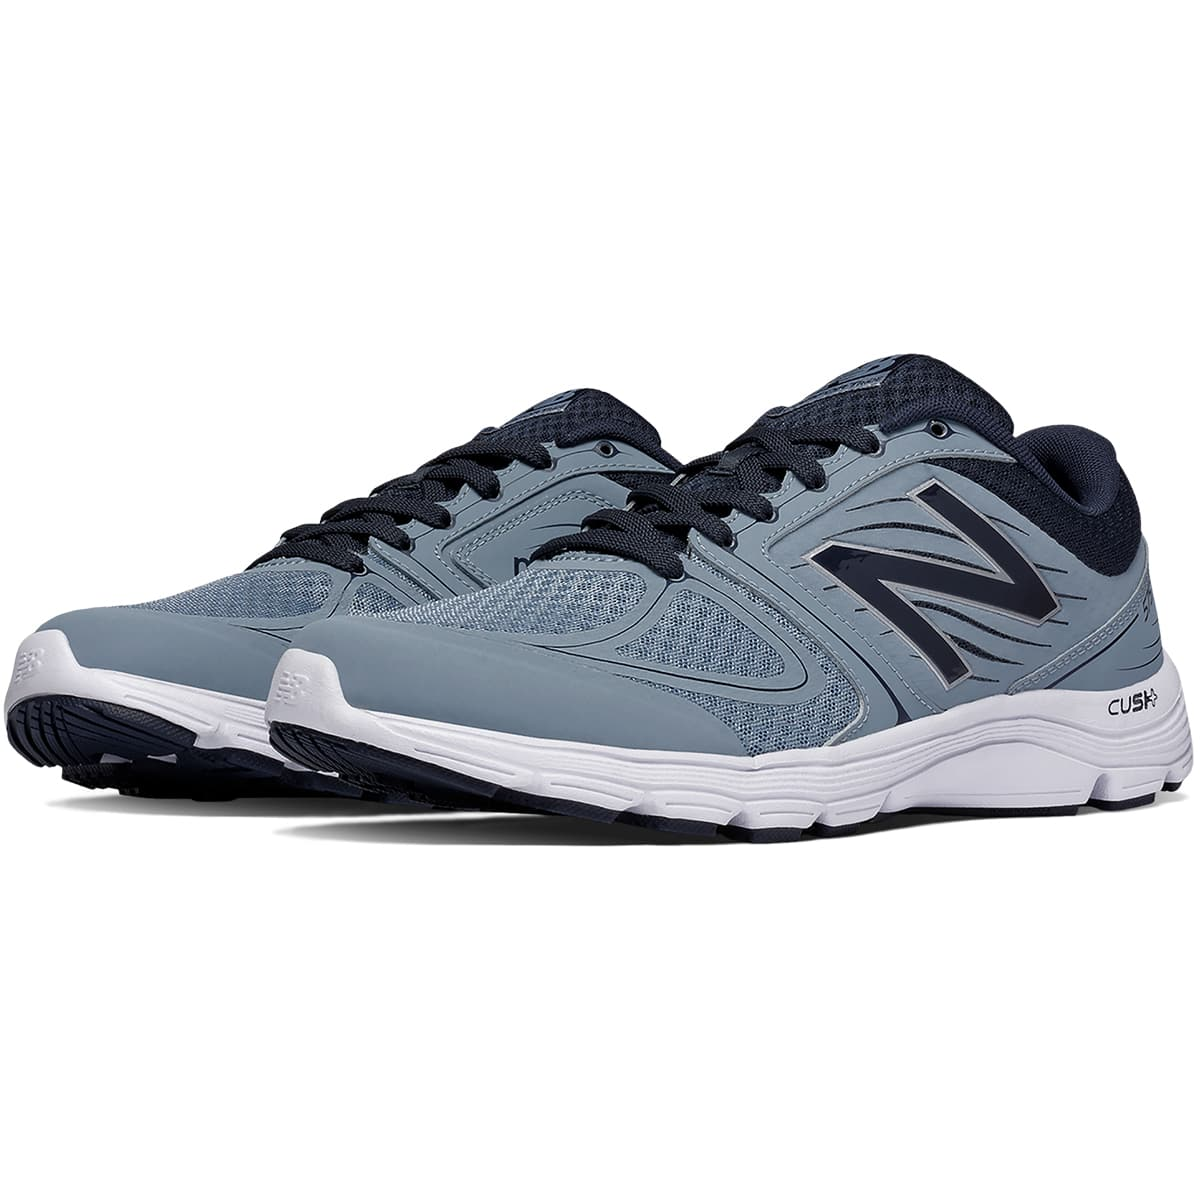 New Balance 575v2 or 575 Running Shoe (Men's or Women's) for $30 with free shipping